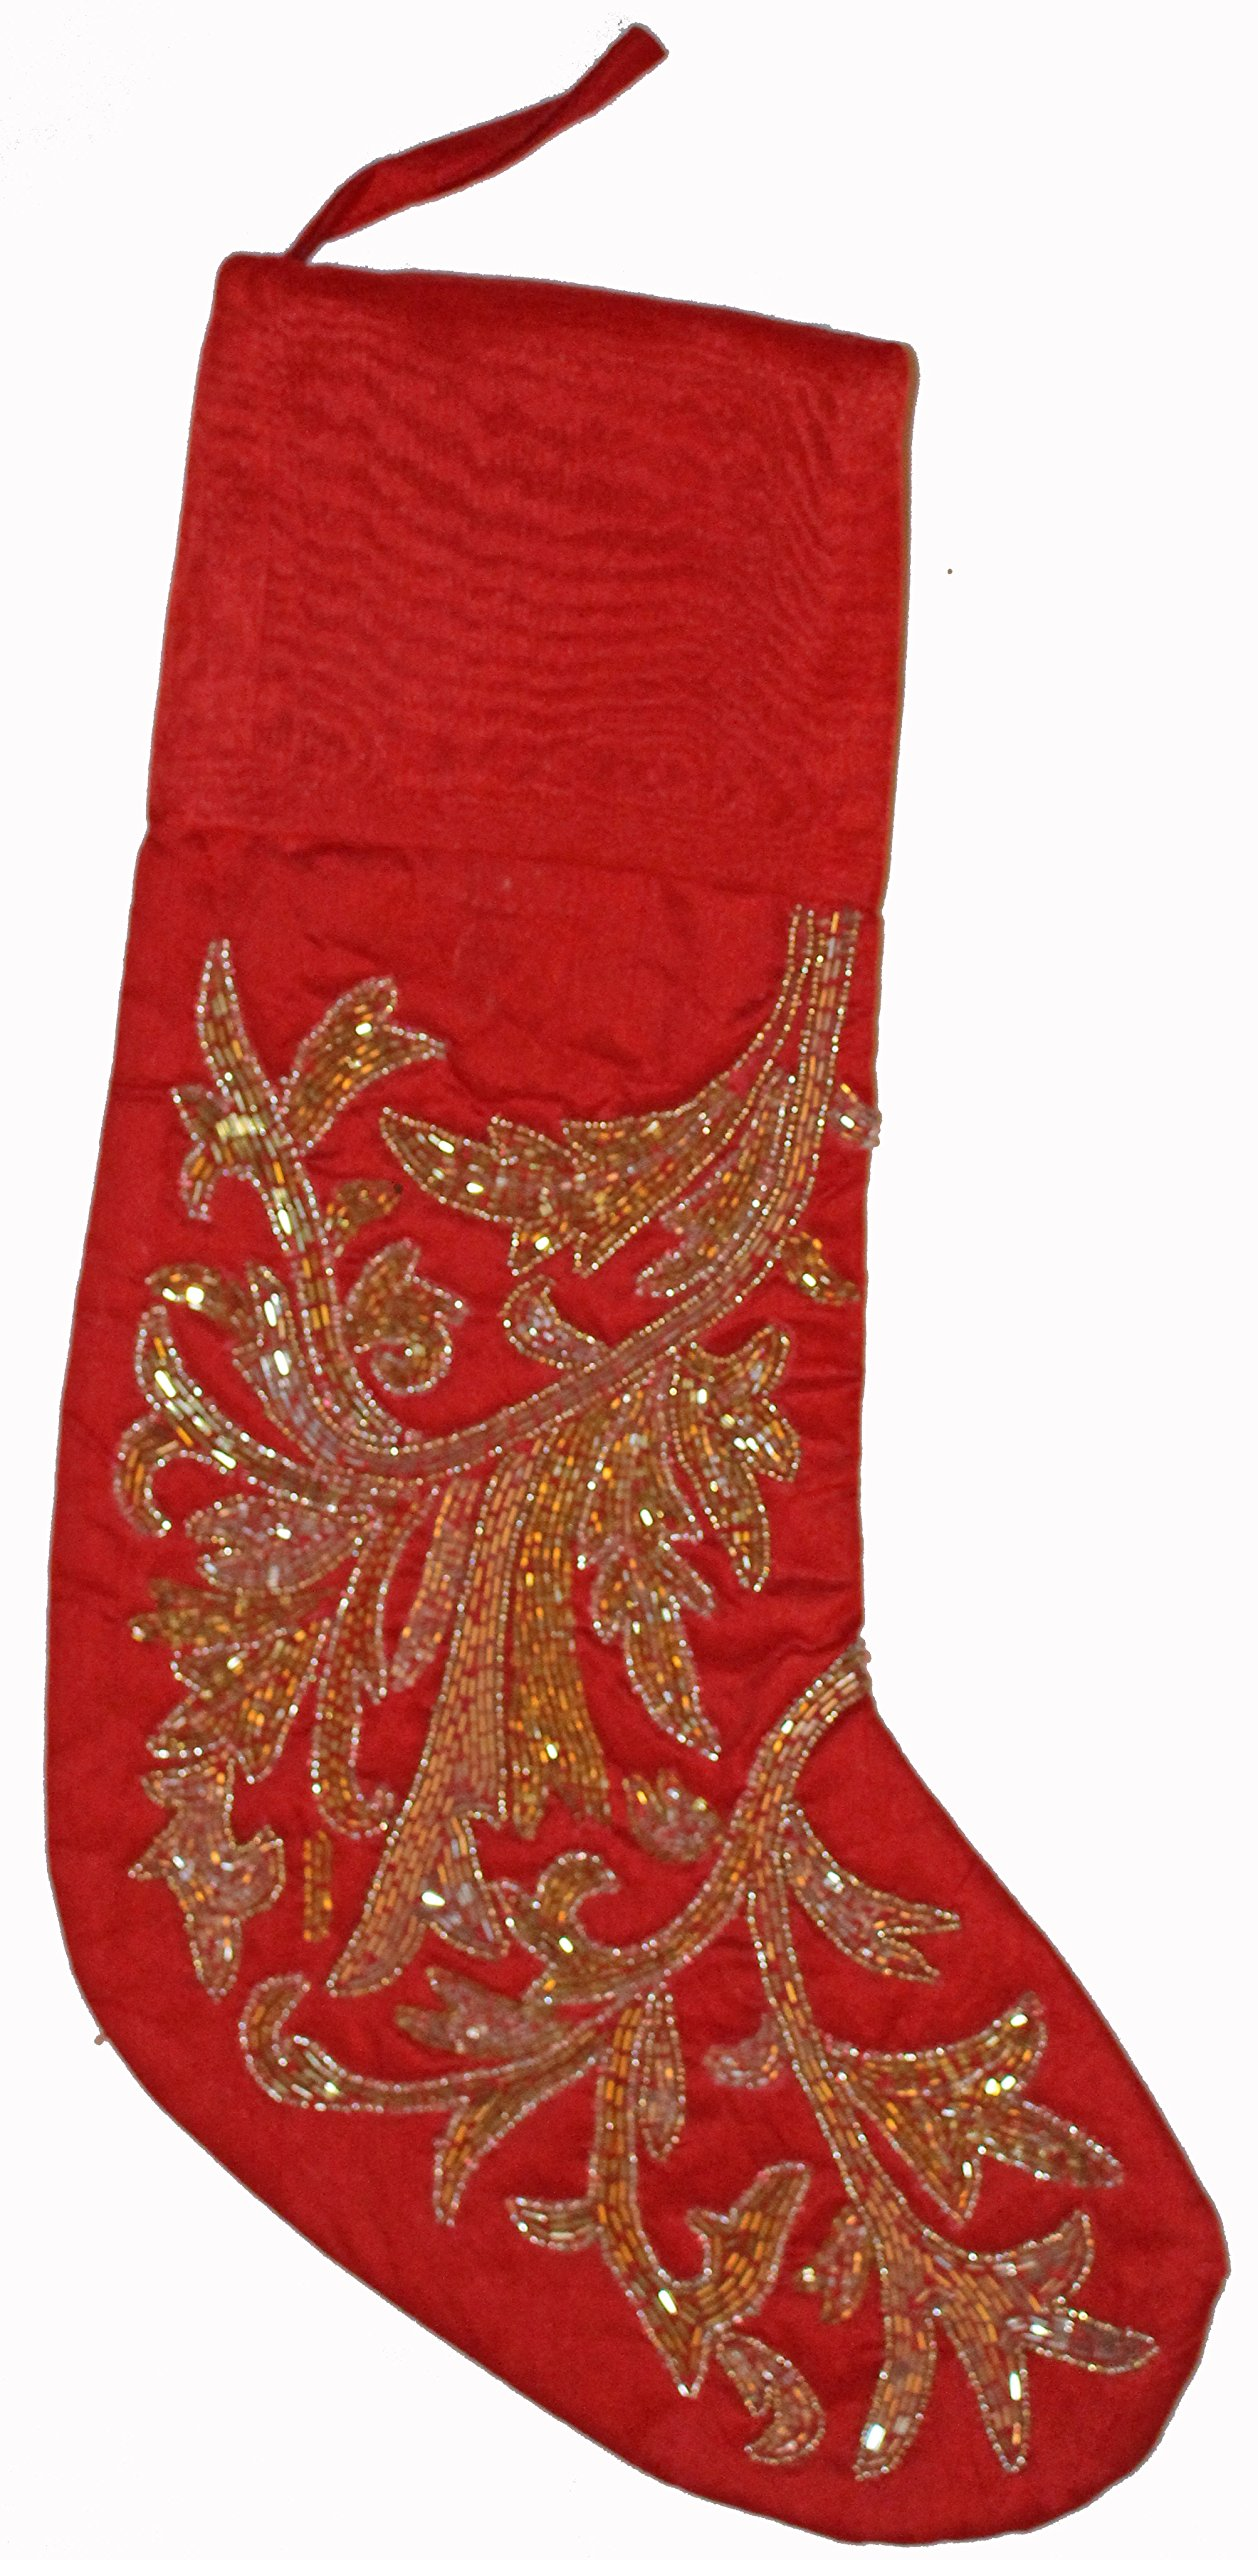 Nantucket Home Beaded Scroll Christmas Holiday Stocking, 21-Inch (Red)